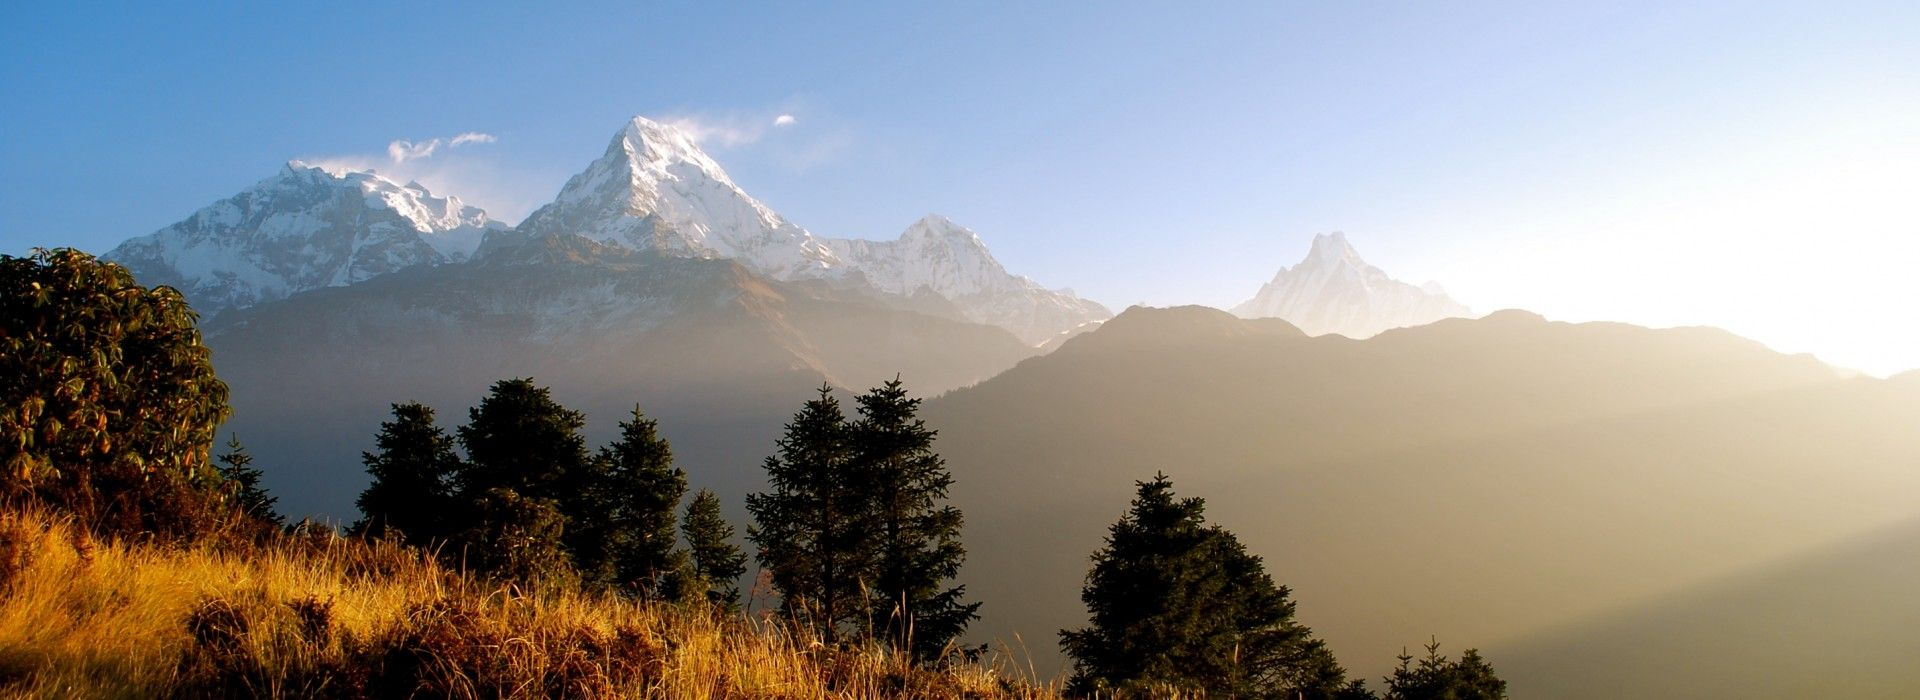 Mountains Tours in Everest Region